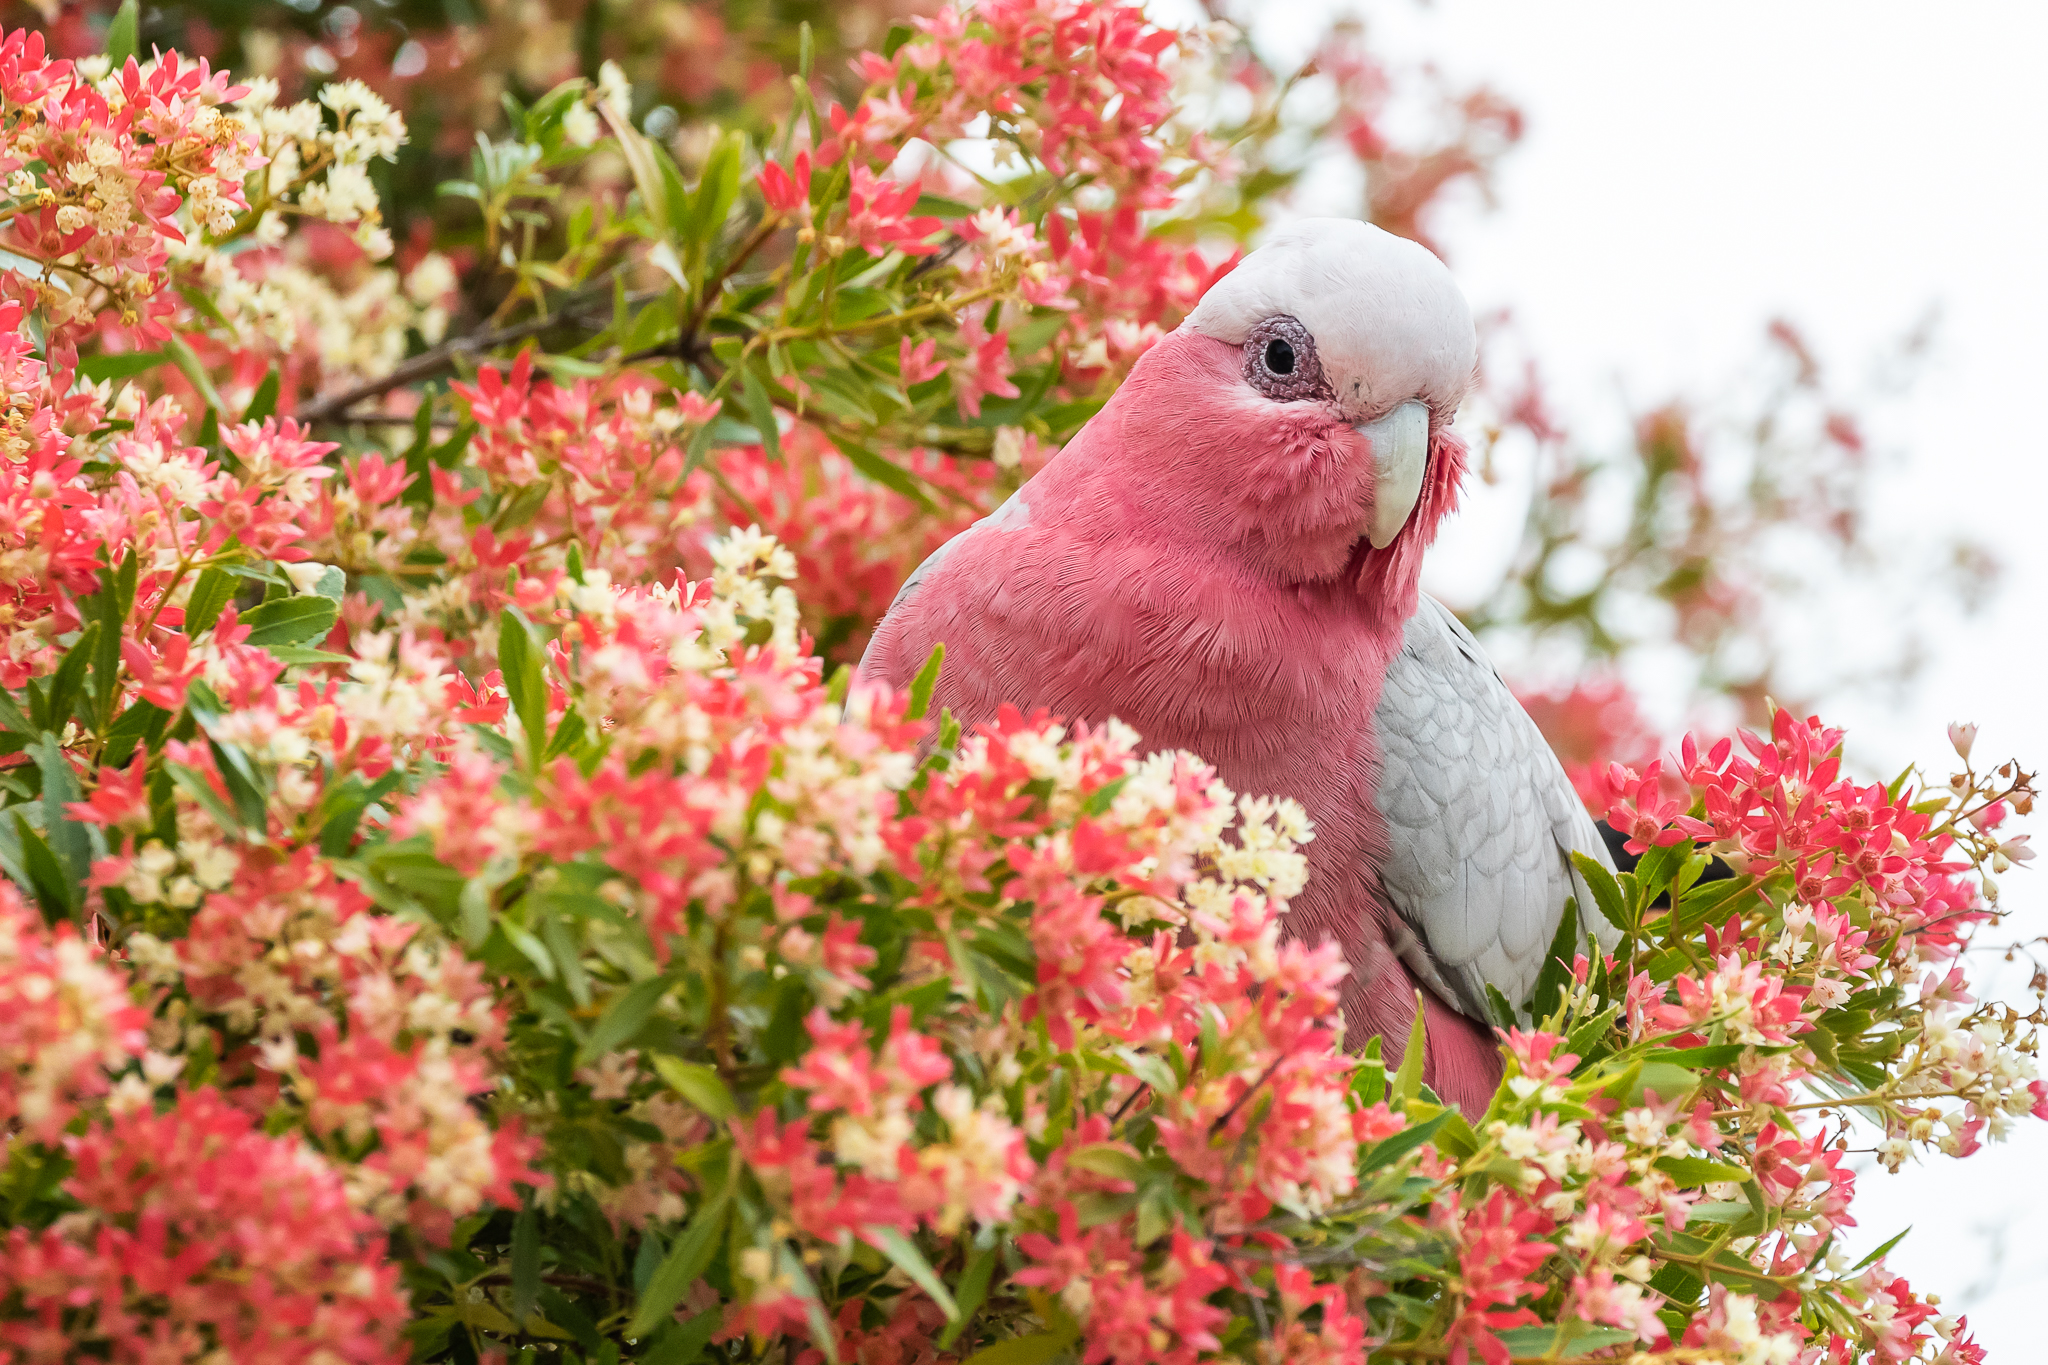 Galahs (38 cm) are one of Australia's most widespread birds, found in cities, on beaches and in the bush. They feed on seeds from the ground and take advantage of cultivated grain production supplemented by nectar.